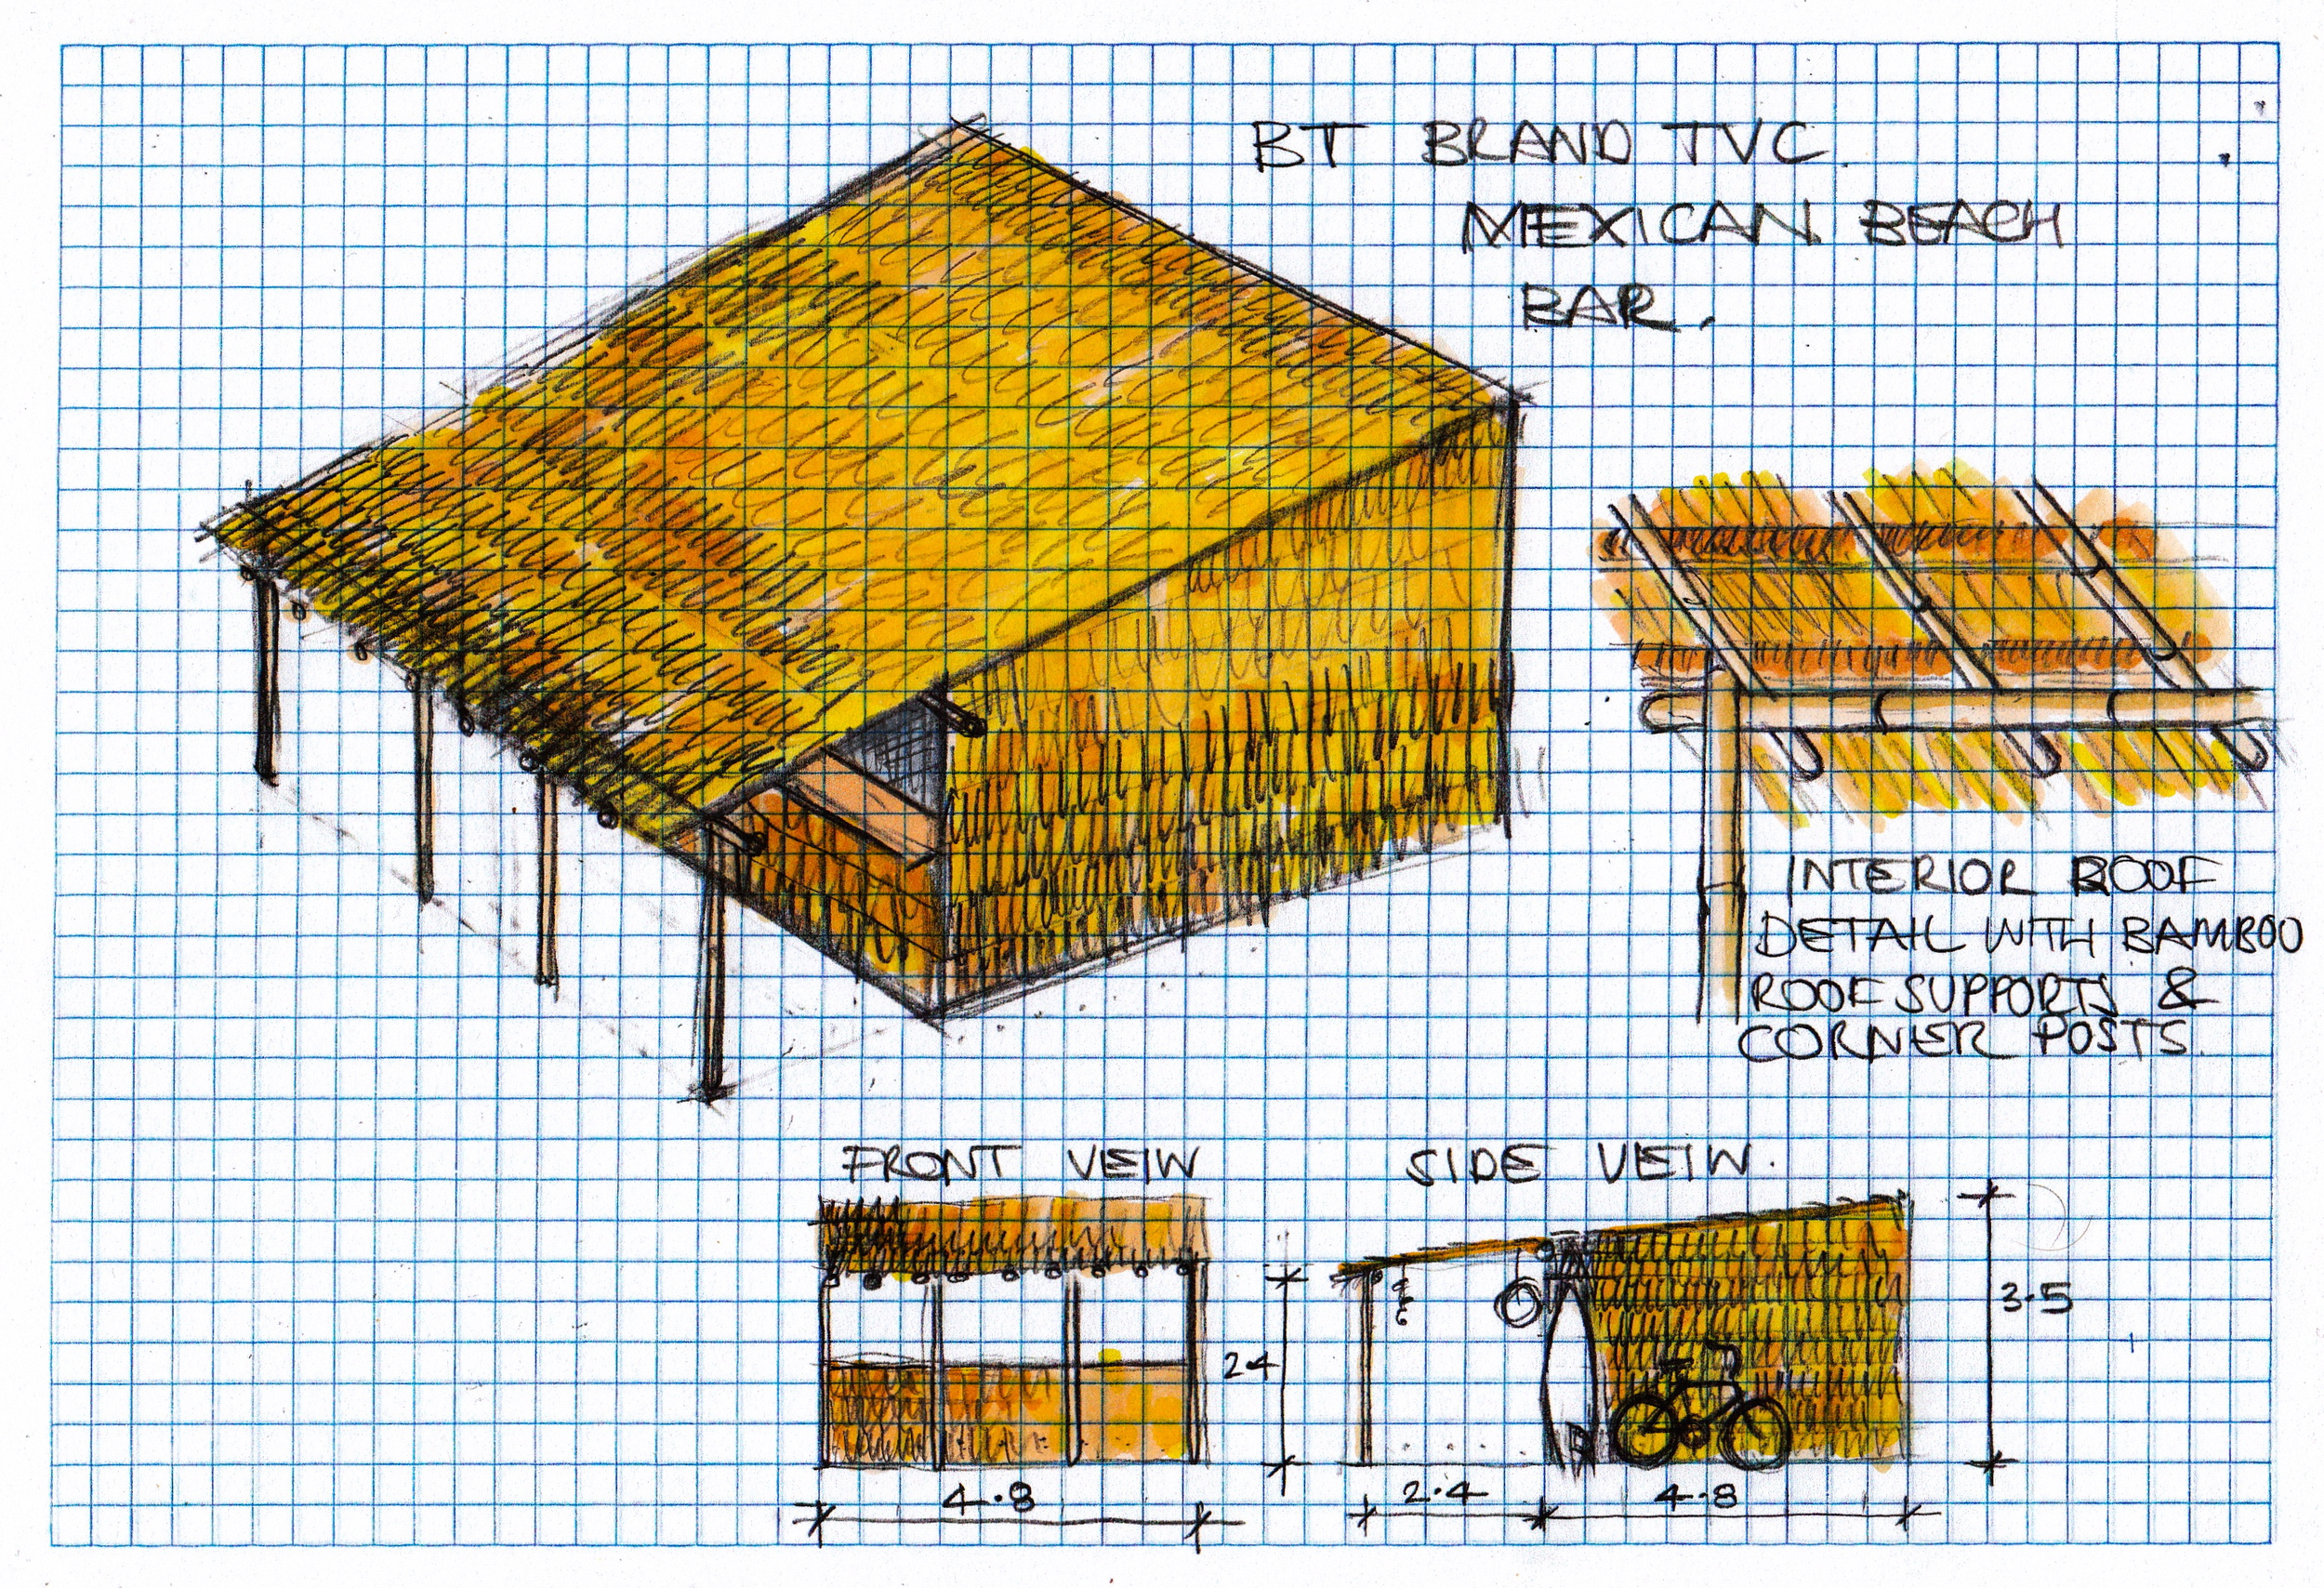 concept illustration of Mexican beach bar